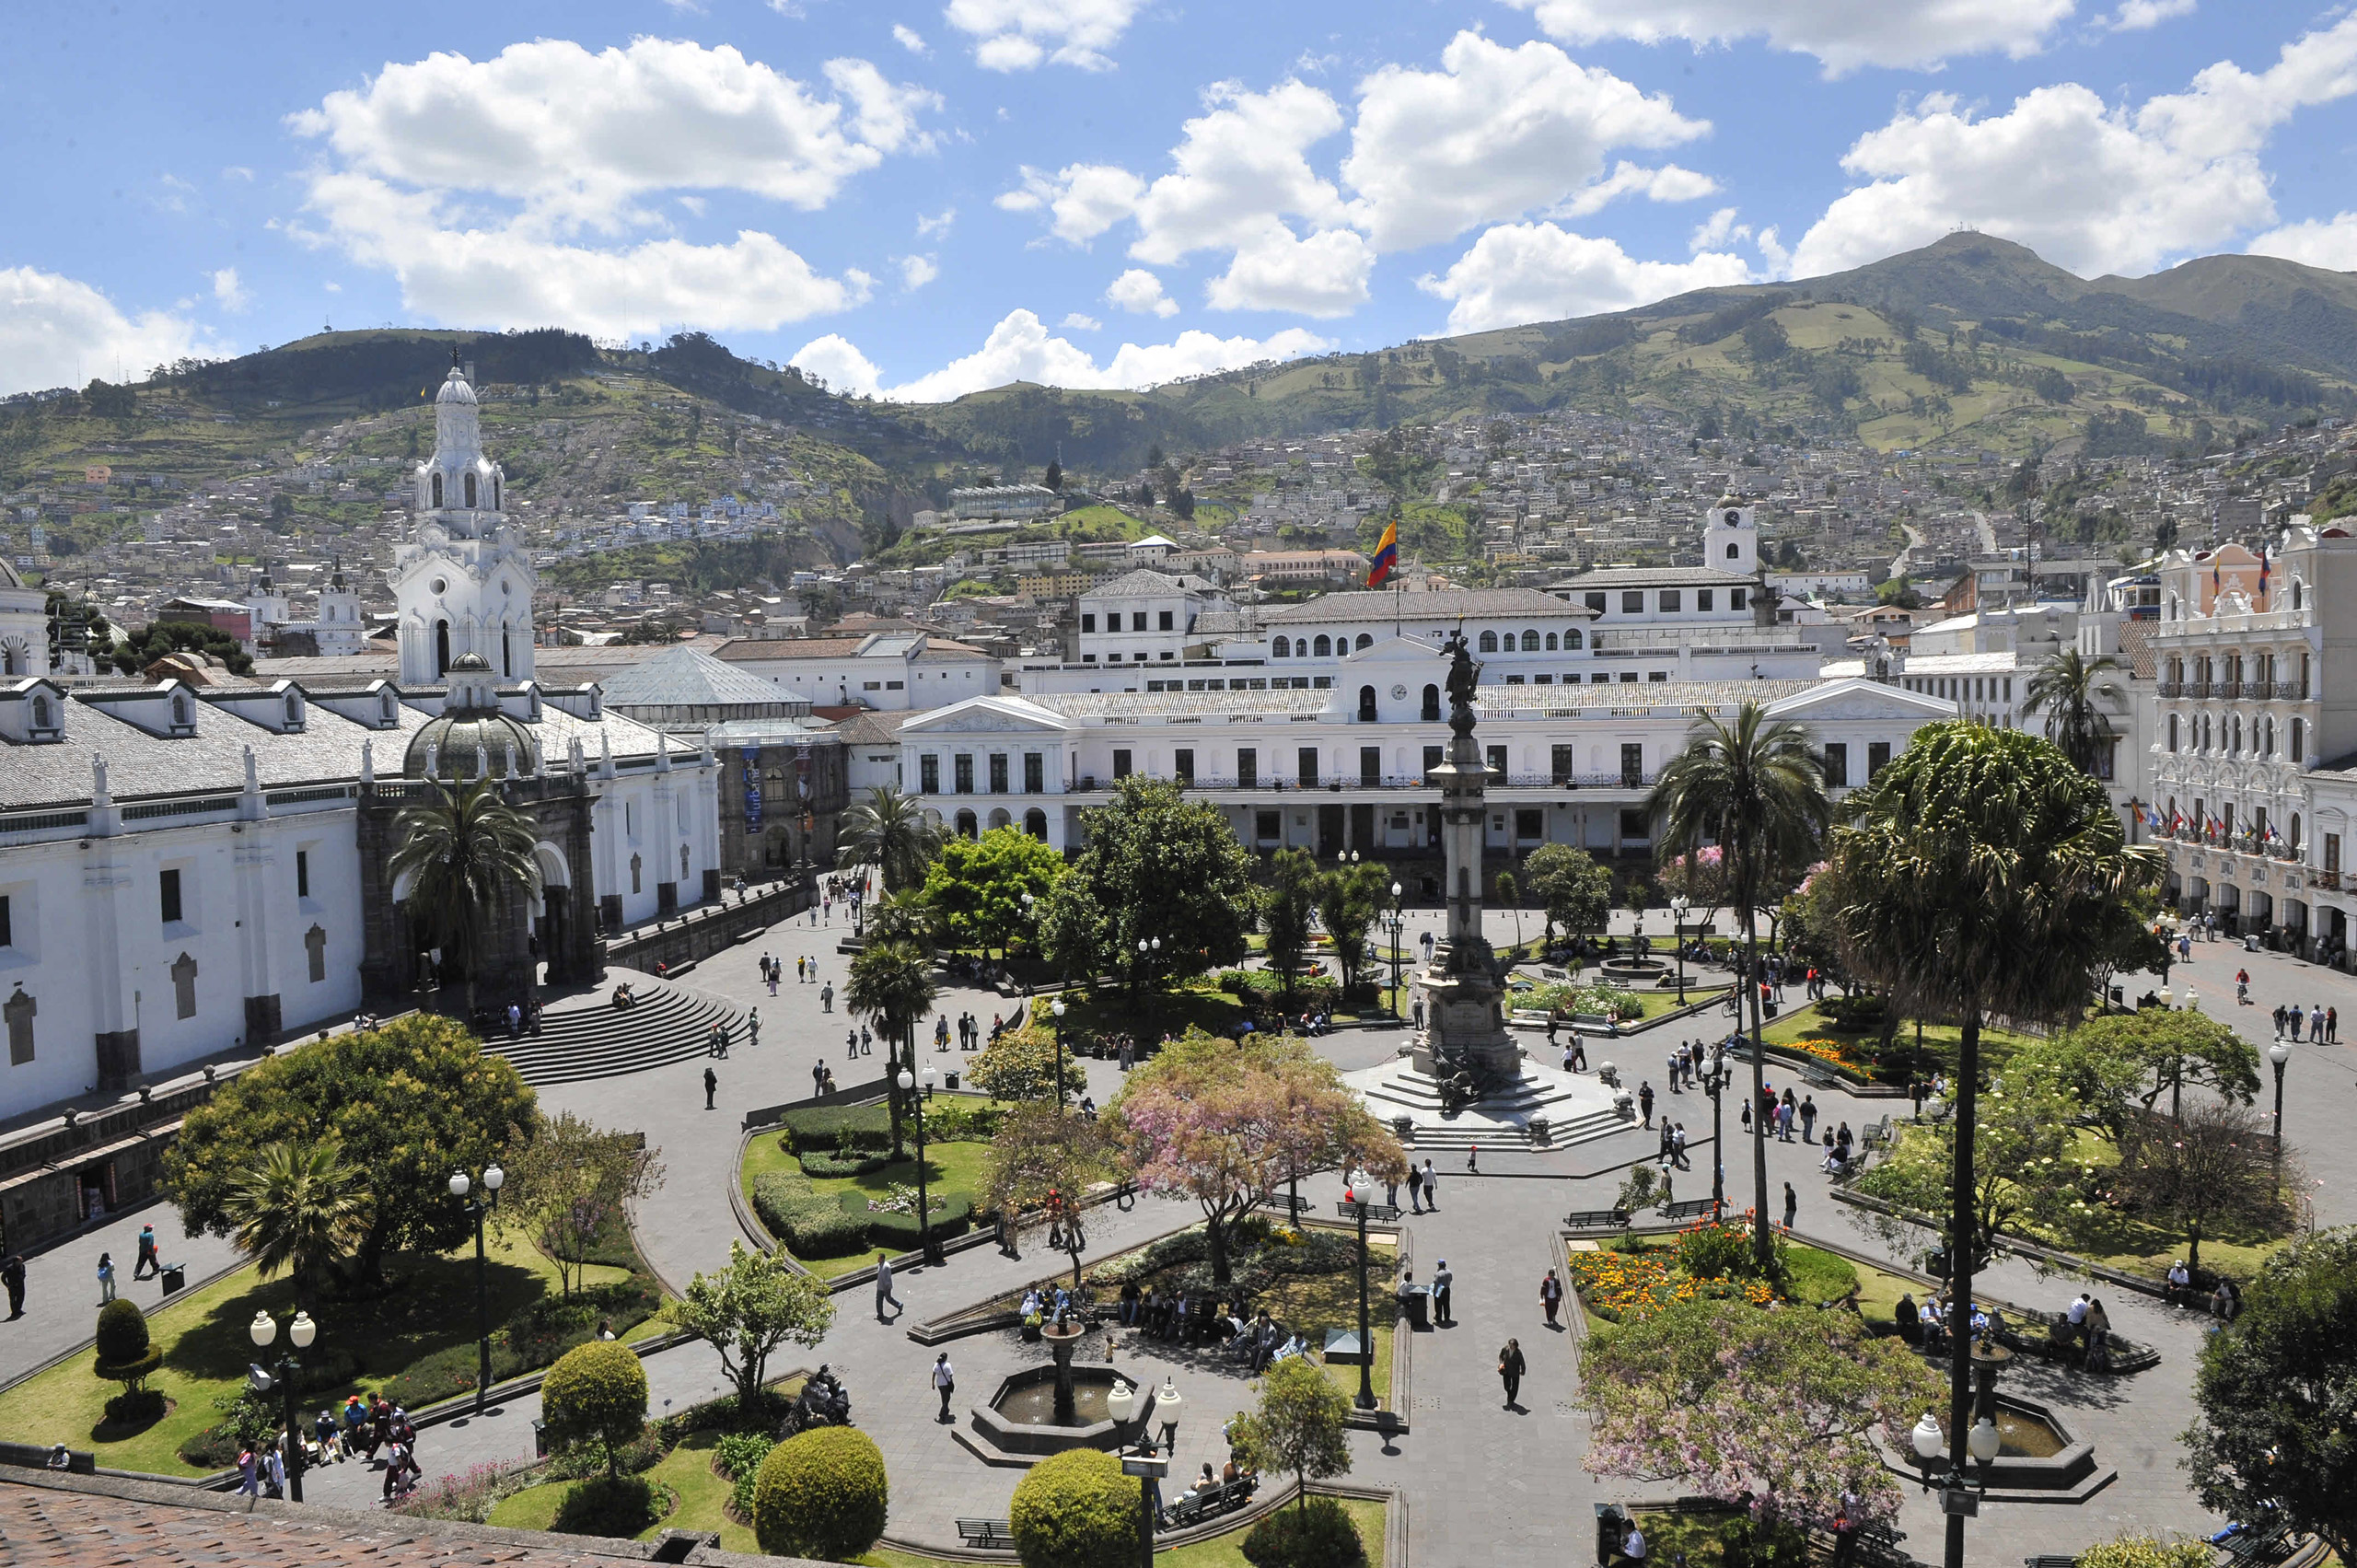 Quito's Plaza Grande square seen on Sept. 12, 2008, in a week in which the Ecuadorean capital celebrates its 30th anniversary as a World Heritage Site. Founded by the Spanish in 1534, the city of Quito was in 1978 the first capital to be inscribed in the UNESCO's cultural heritage list.